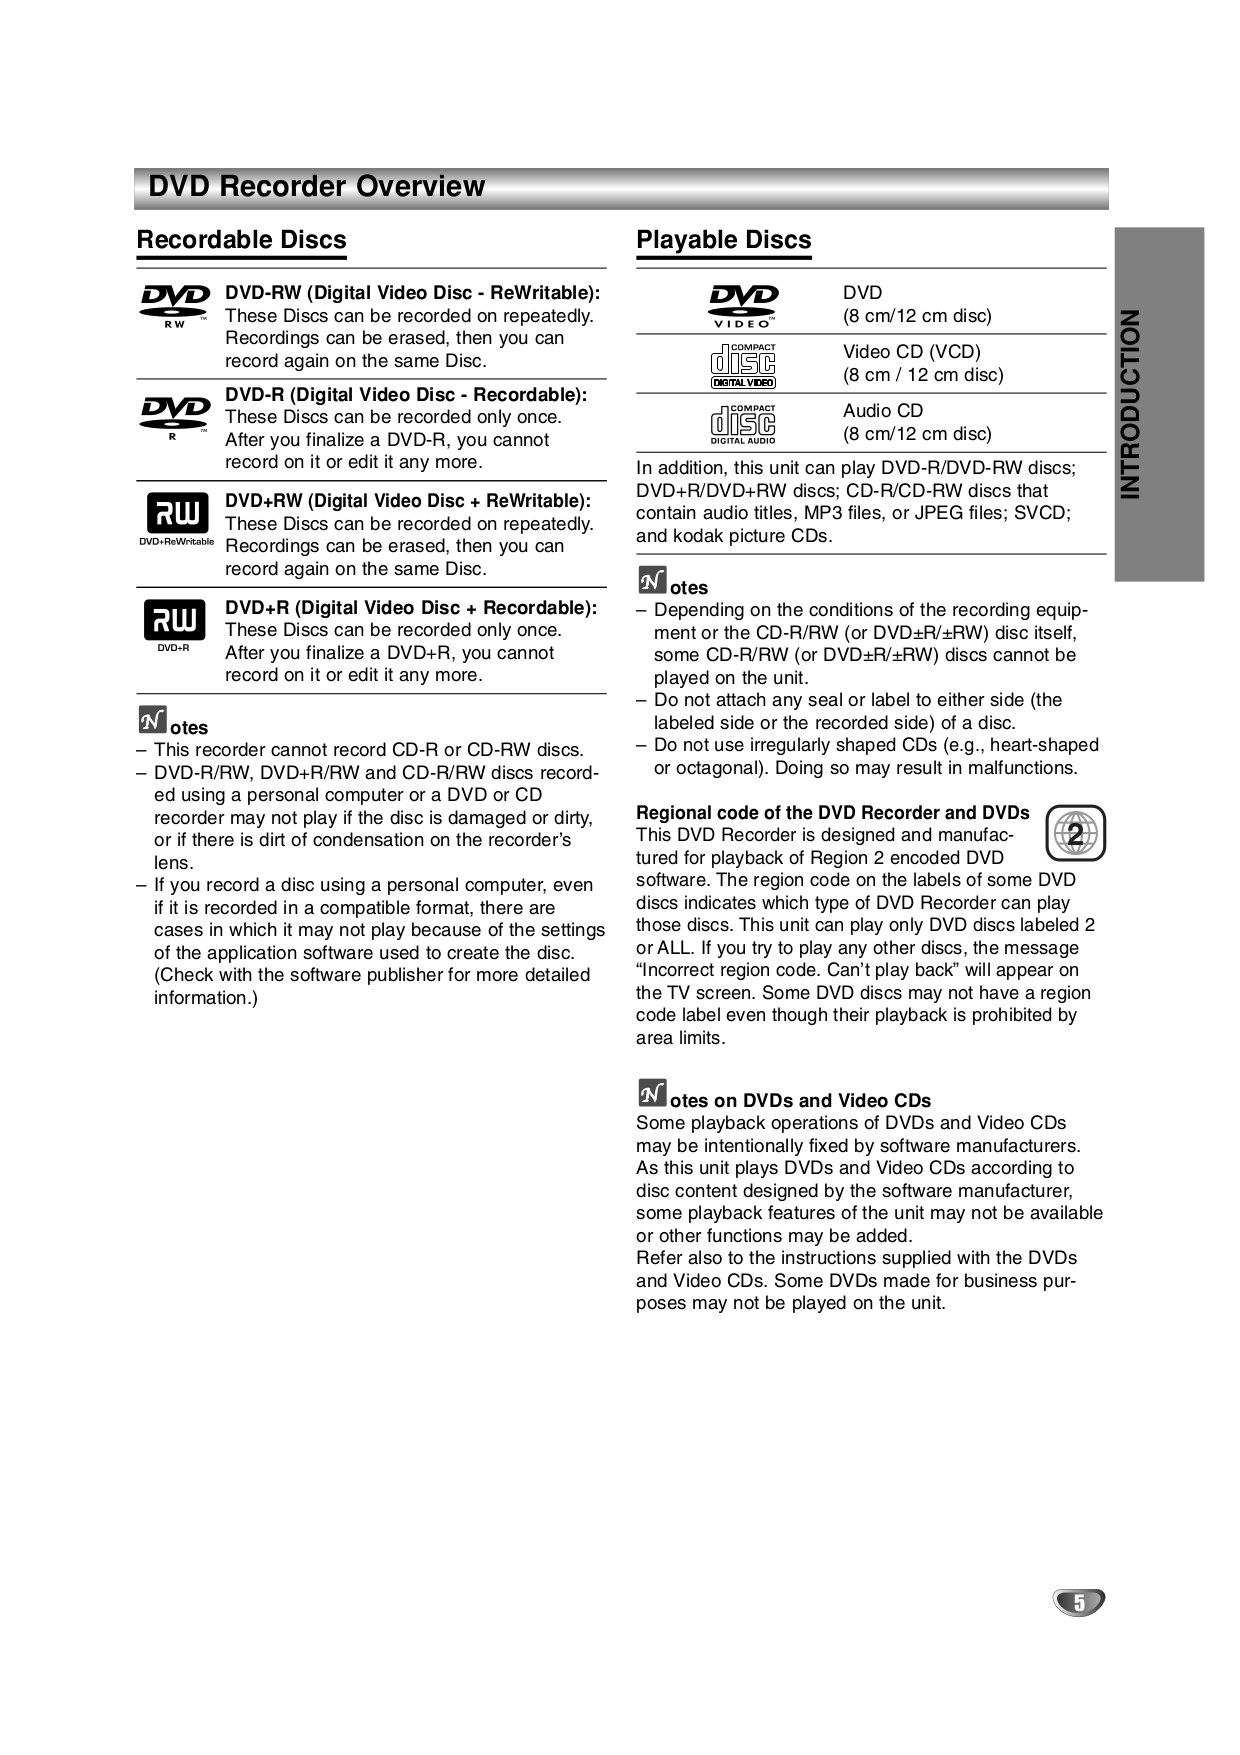 PDF manual for Samsung Home Theater HT-DB600